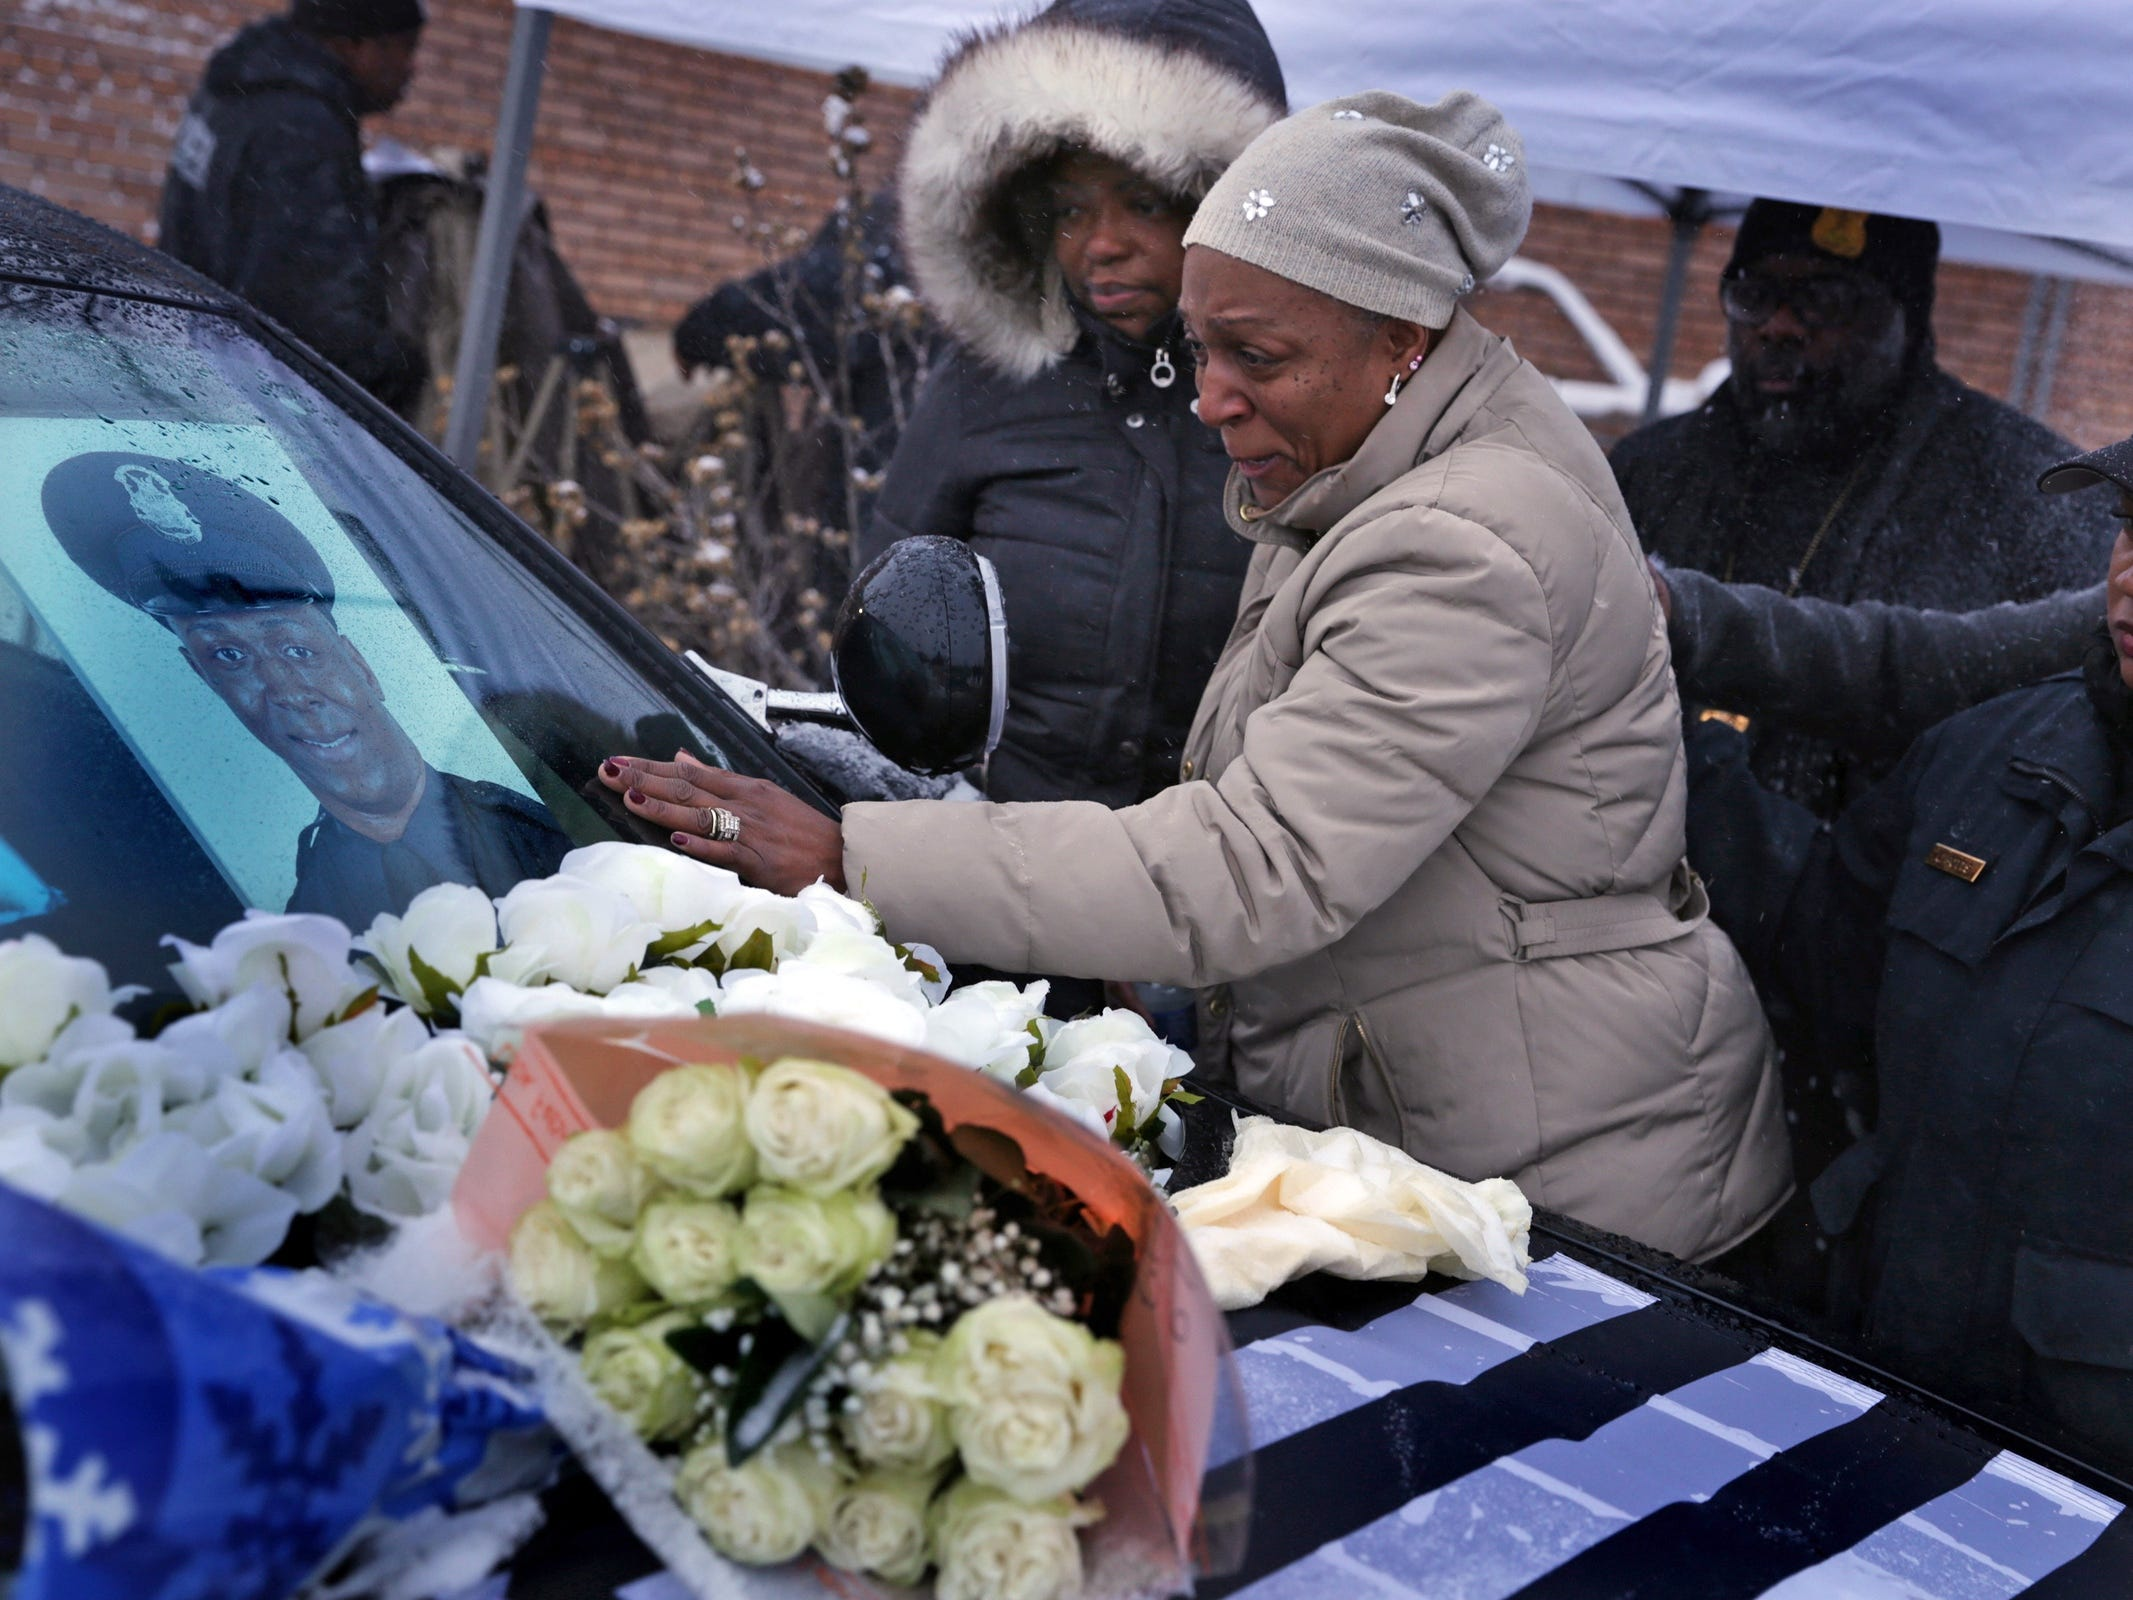 Nikole Flowers, center mourns the death of her son Detroit Police officer Glenn Doss at the end of a vigil at the 7th precinct in Detroit on Monday, January 29, 2017. Officer Doss died Sunday in the hospital days after being shot while responding to a domestic call on Detroit's east side.